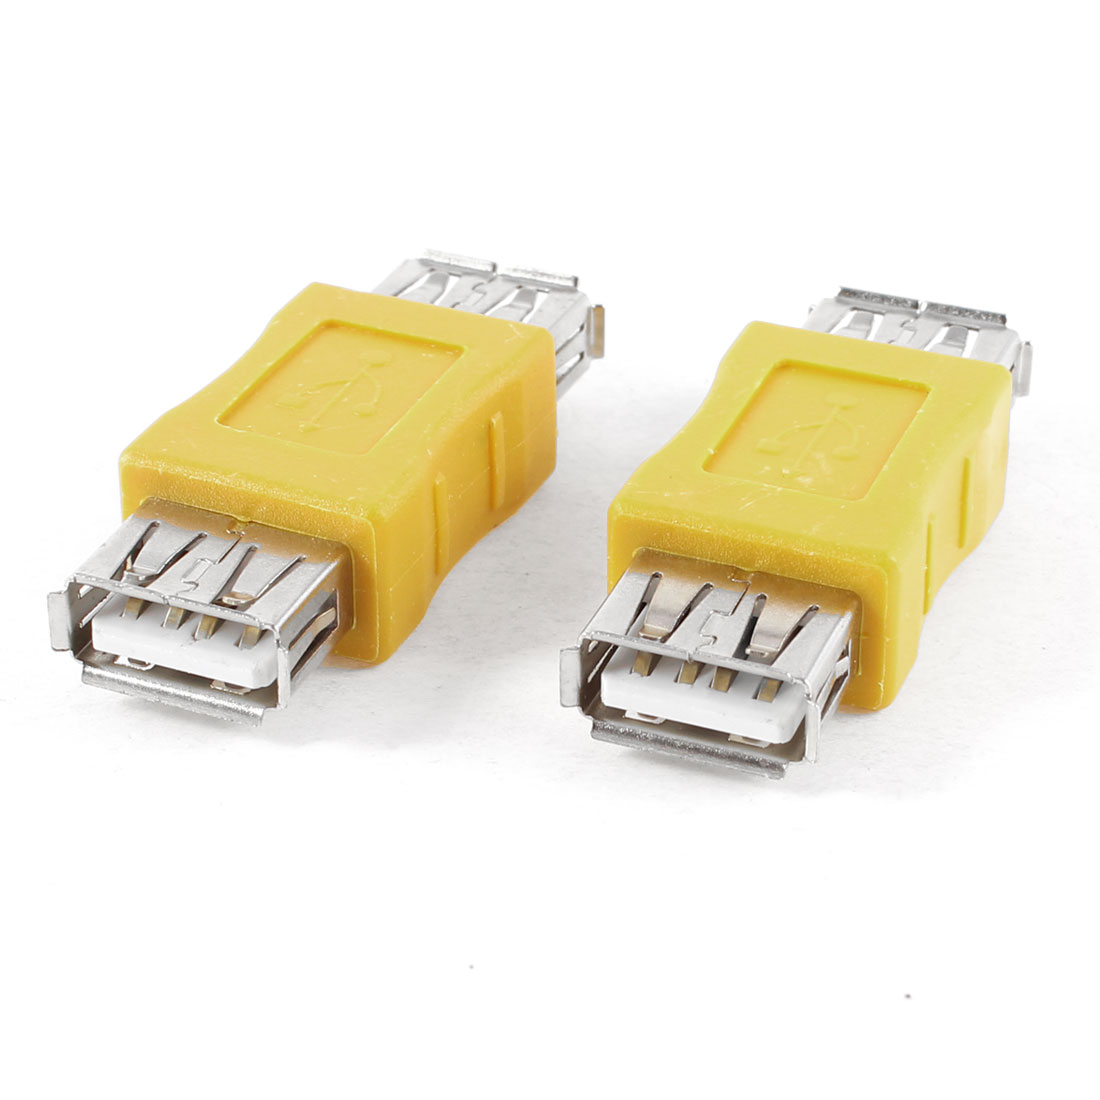 2pcs USB 2.0 Type A Female to Female Connector Adapter Yellow